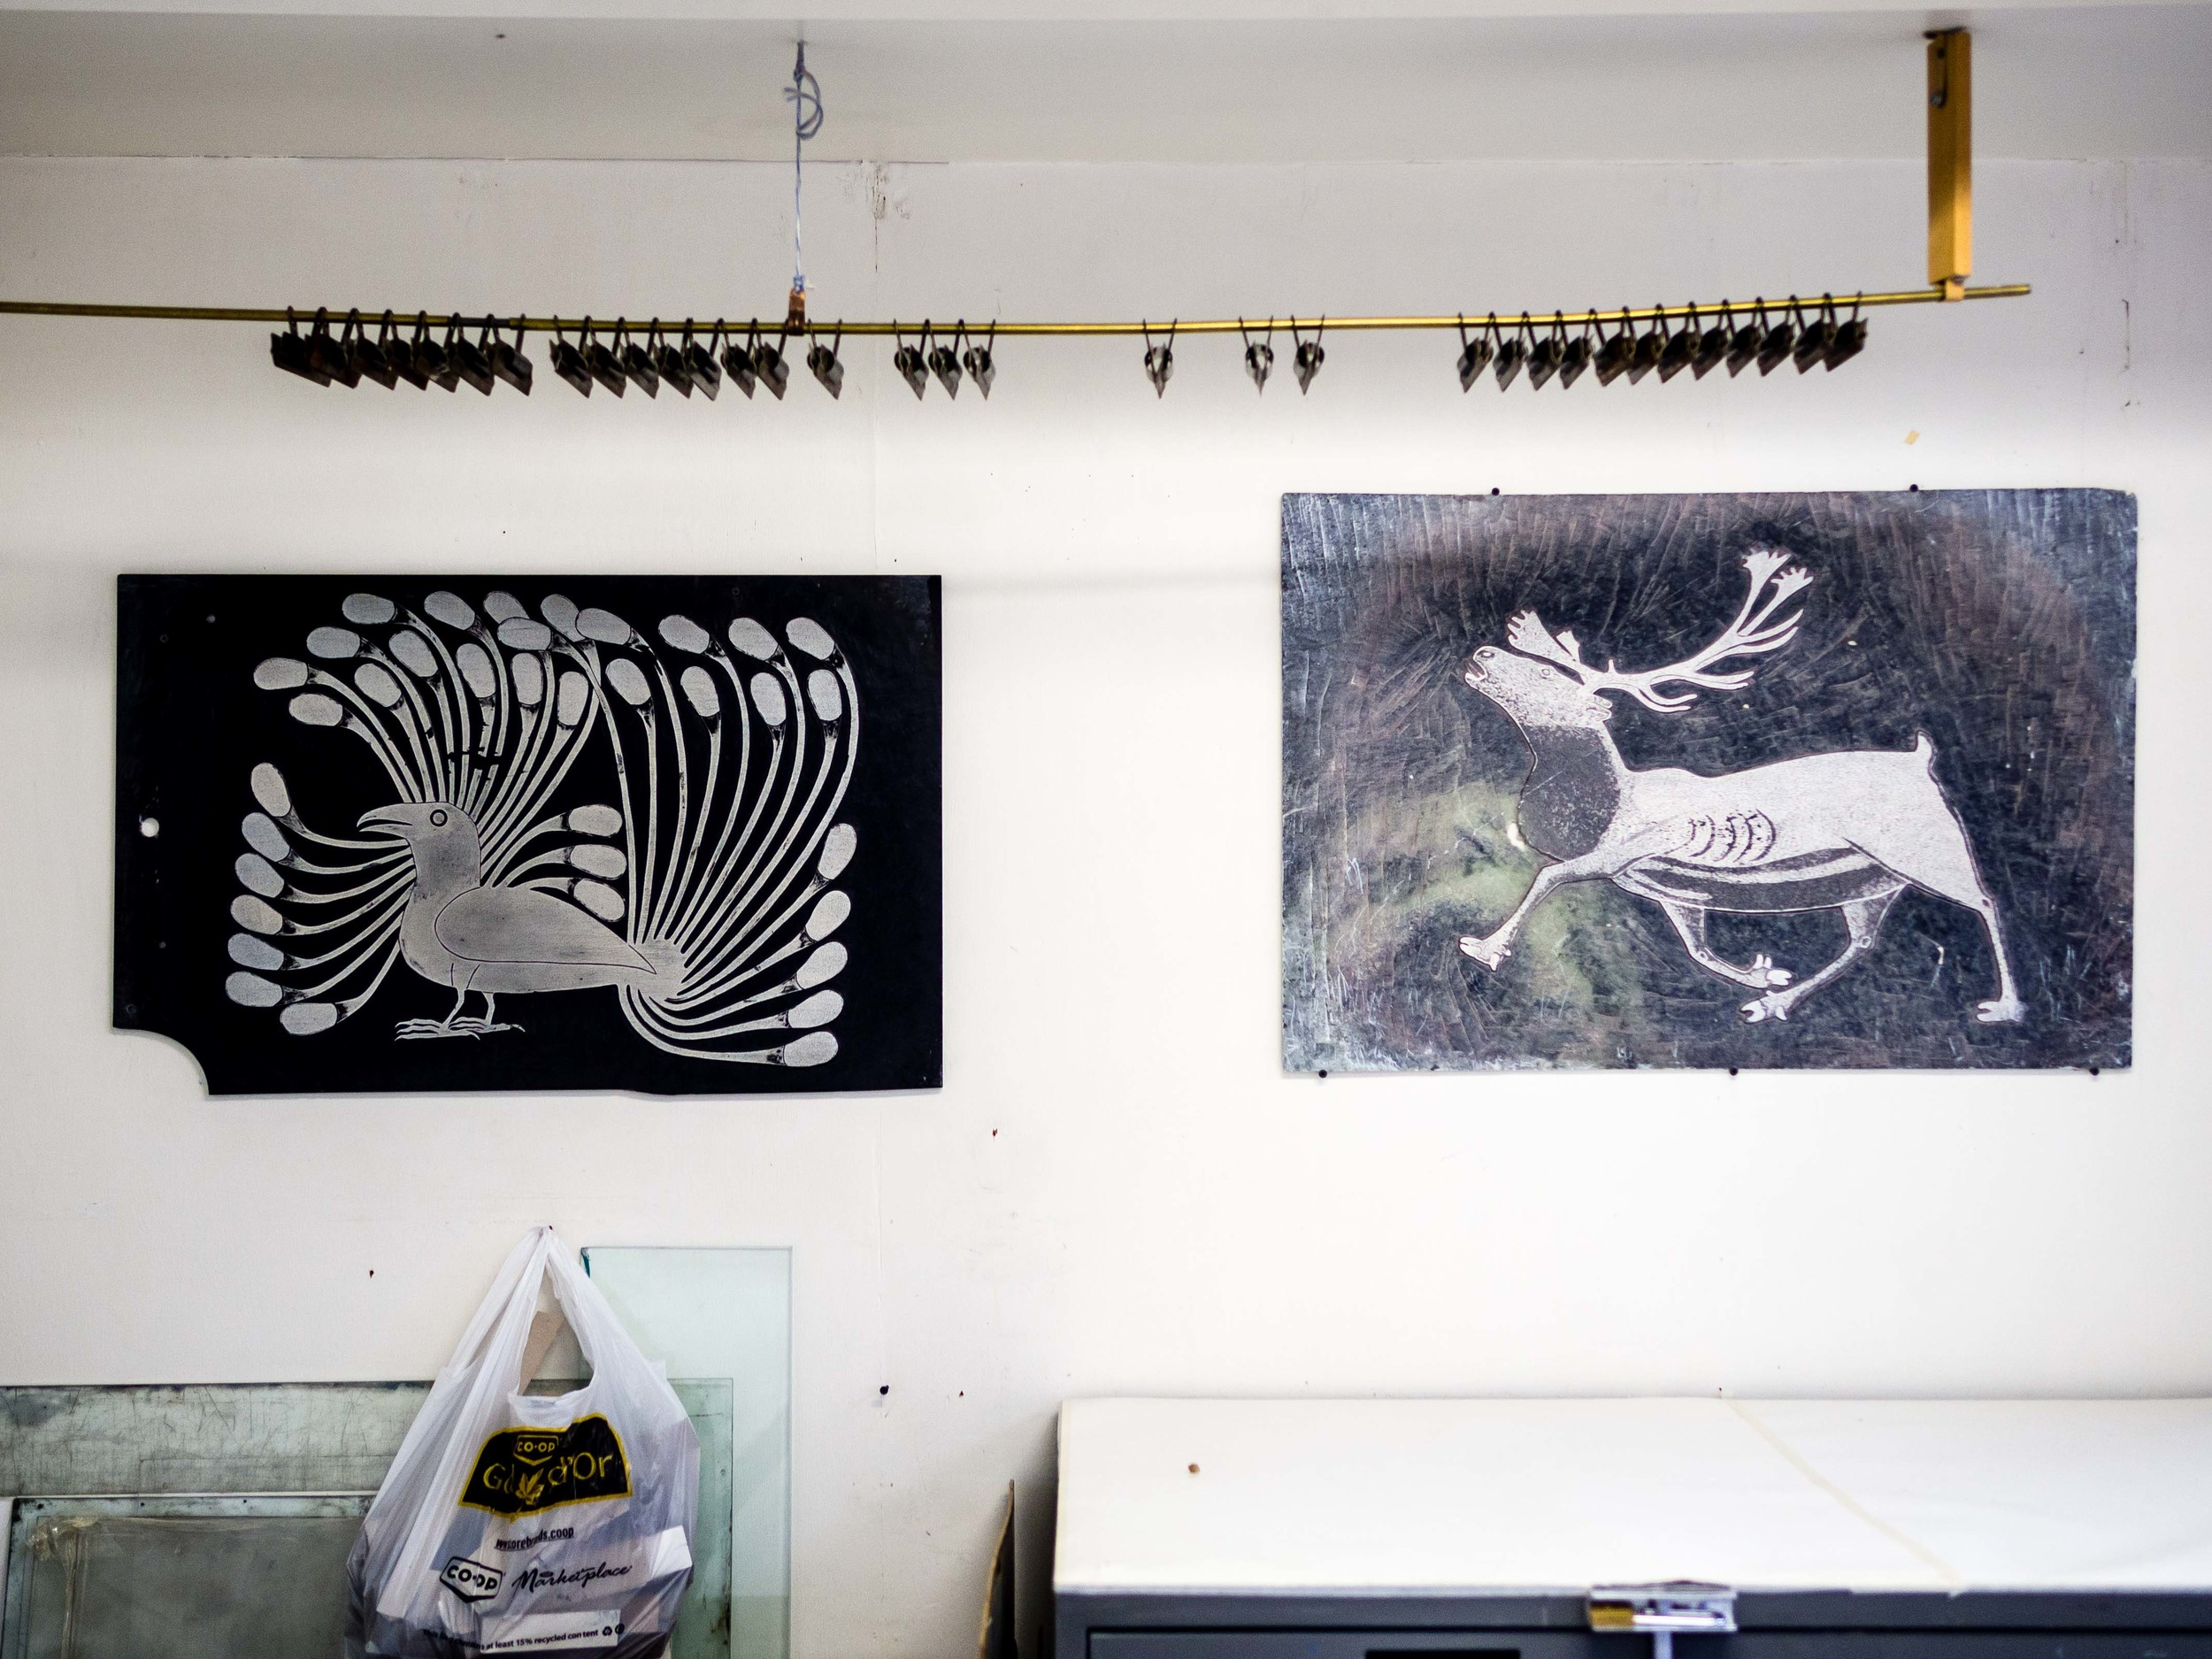 Plates from previous prints at the Dorset Fine Arts studio.